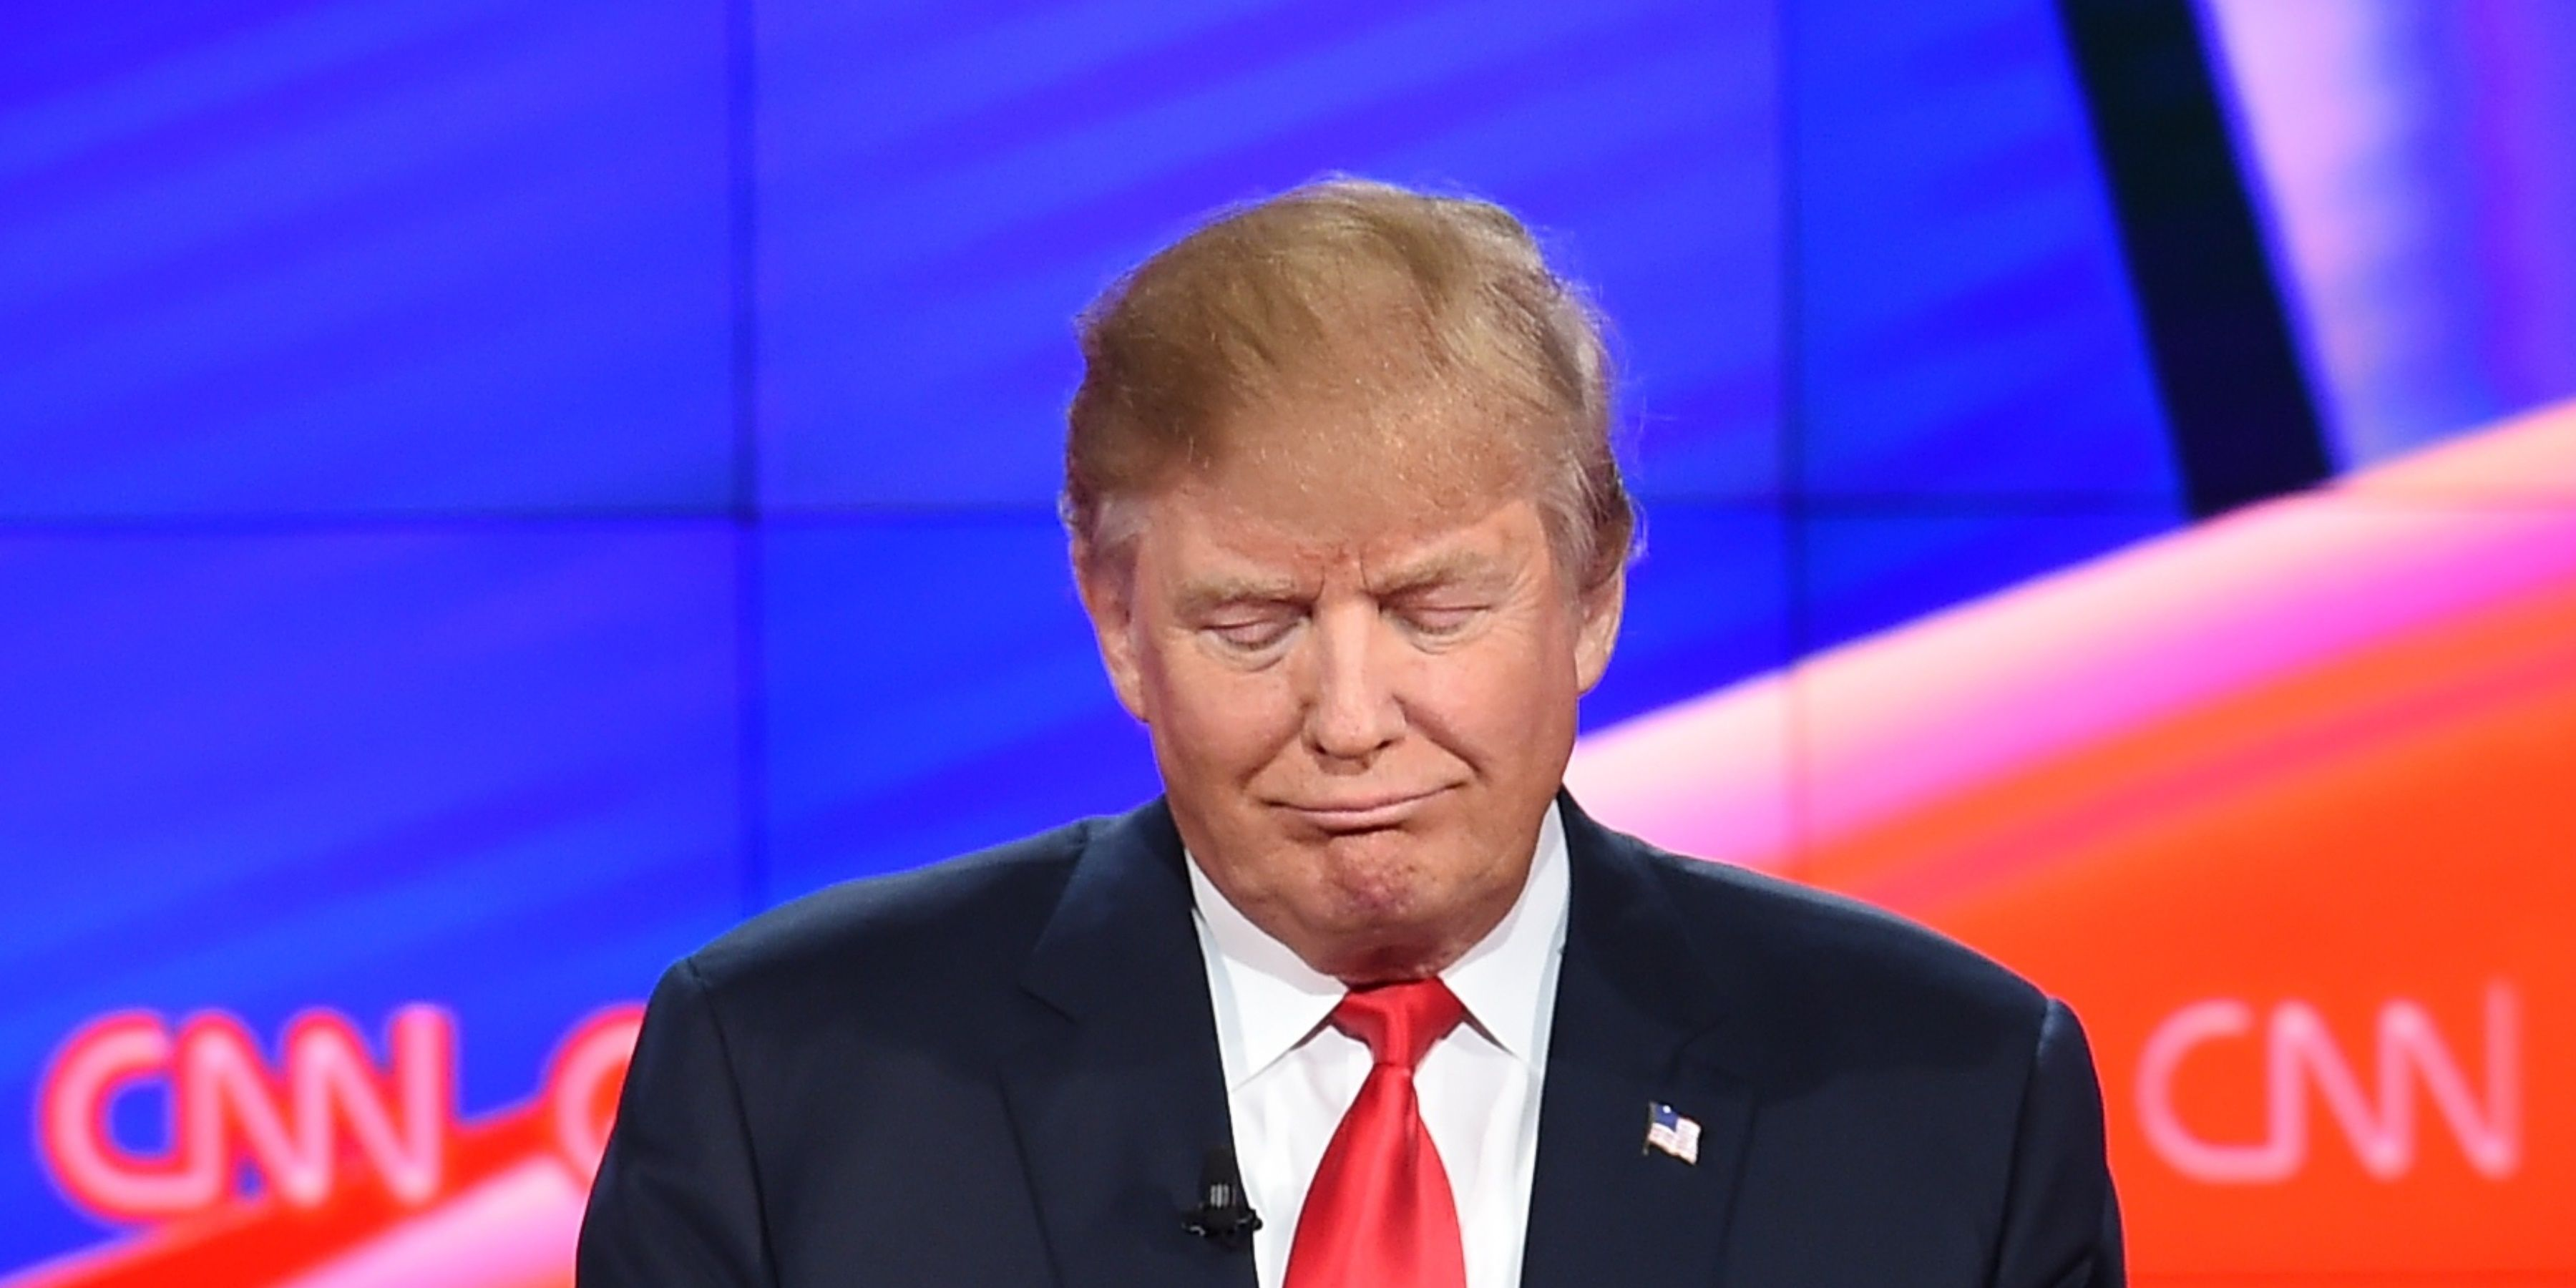 Donald Trump at the Republican Presidential Debate hosted by CNN